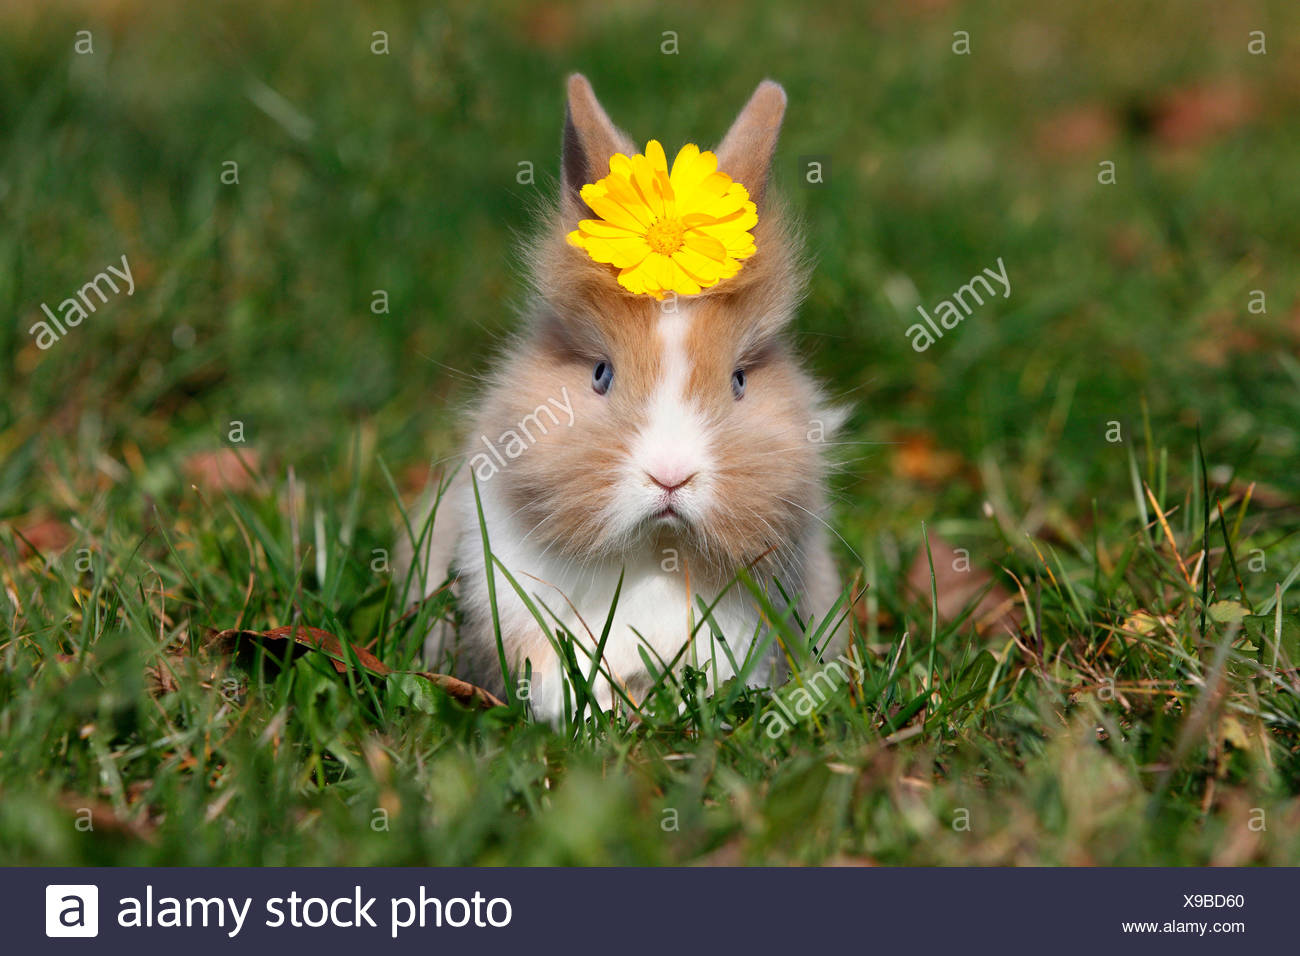 Lion-headed Dwarf rabbit. Young sitting on a meadow, wearing a yellow flower on its head. Germany Stock Photo